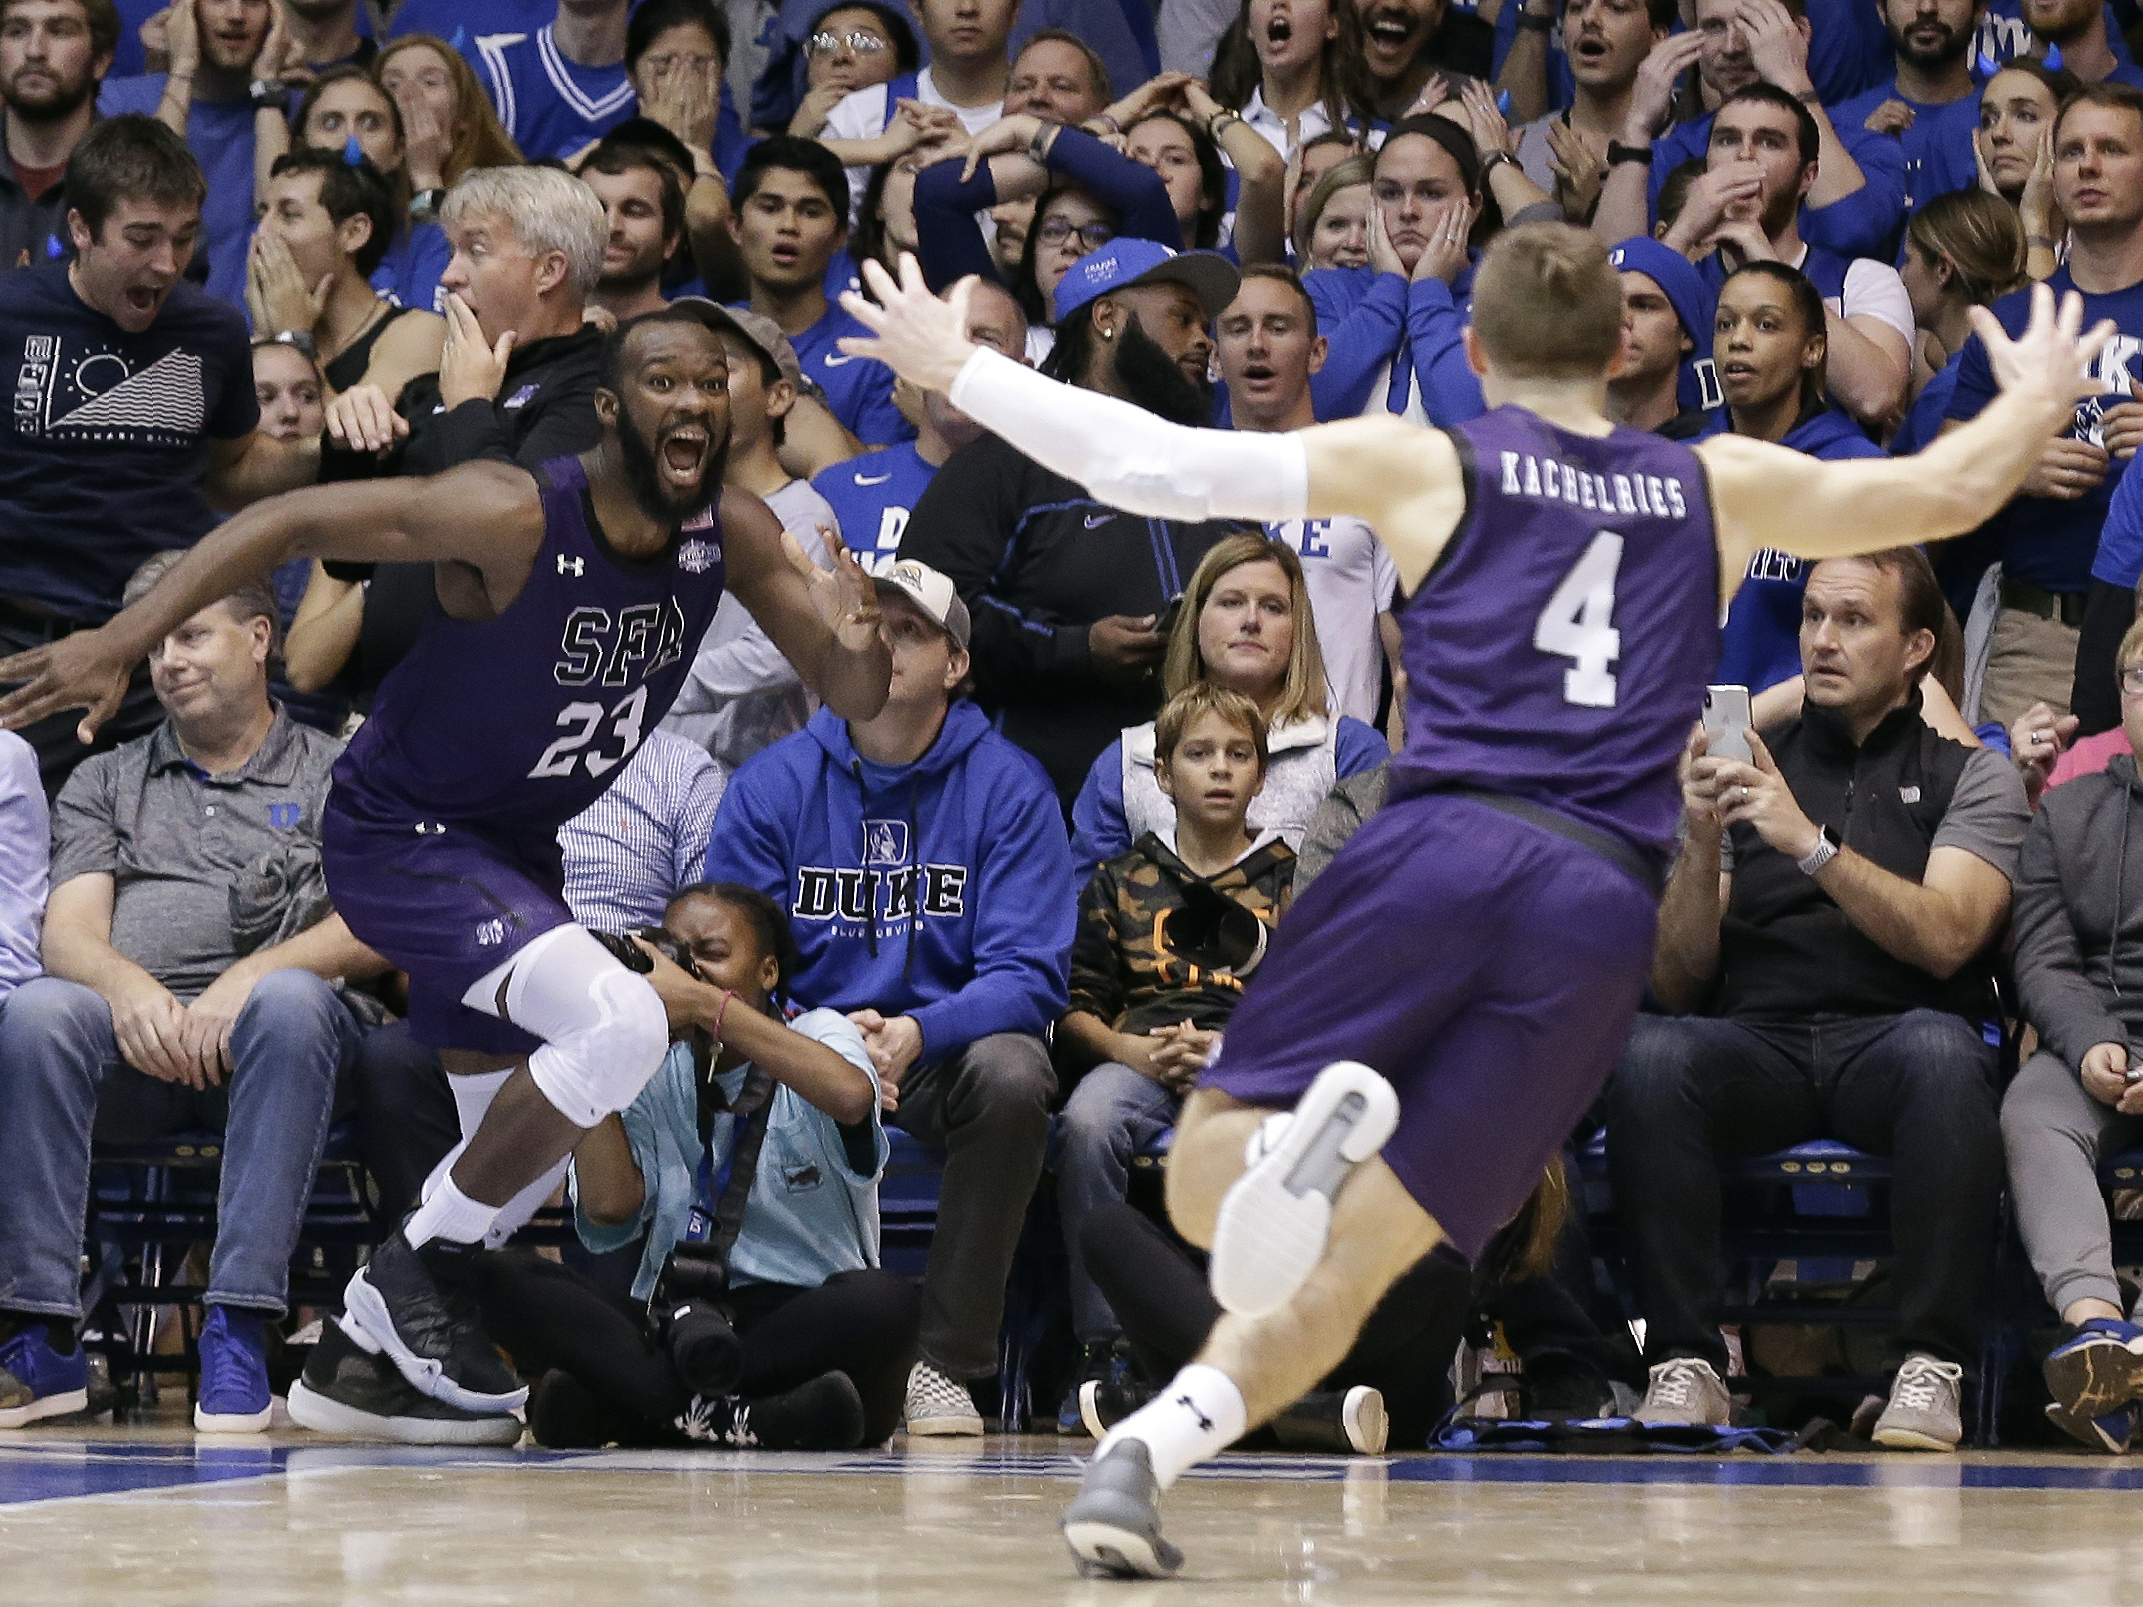 Powerhouse Duke Falls To Stephen F. Austin University With Buzzer-Beating Layup